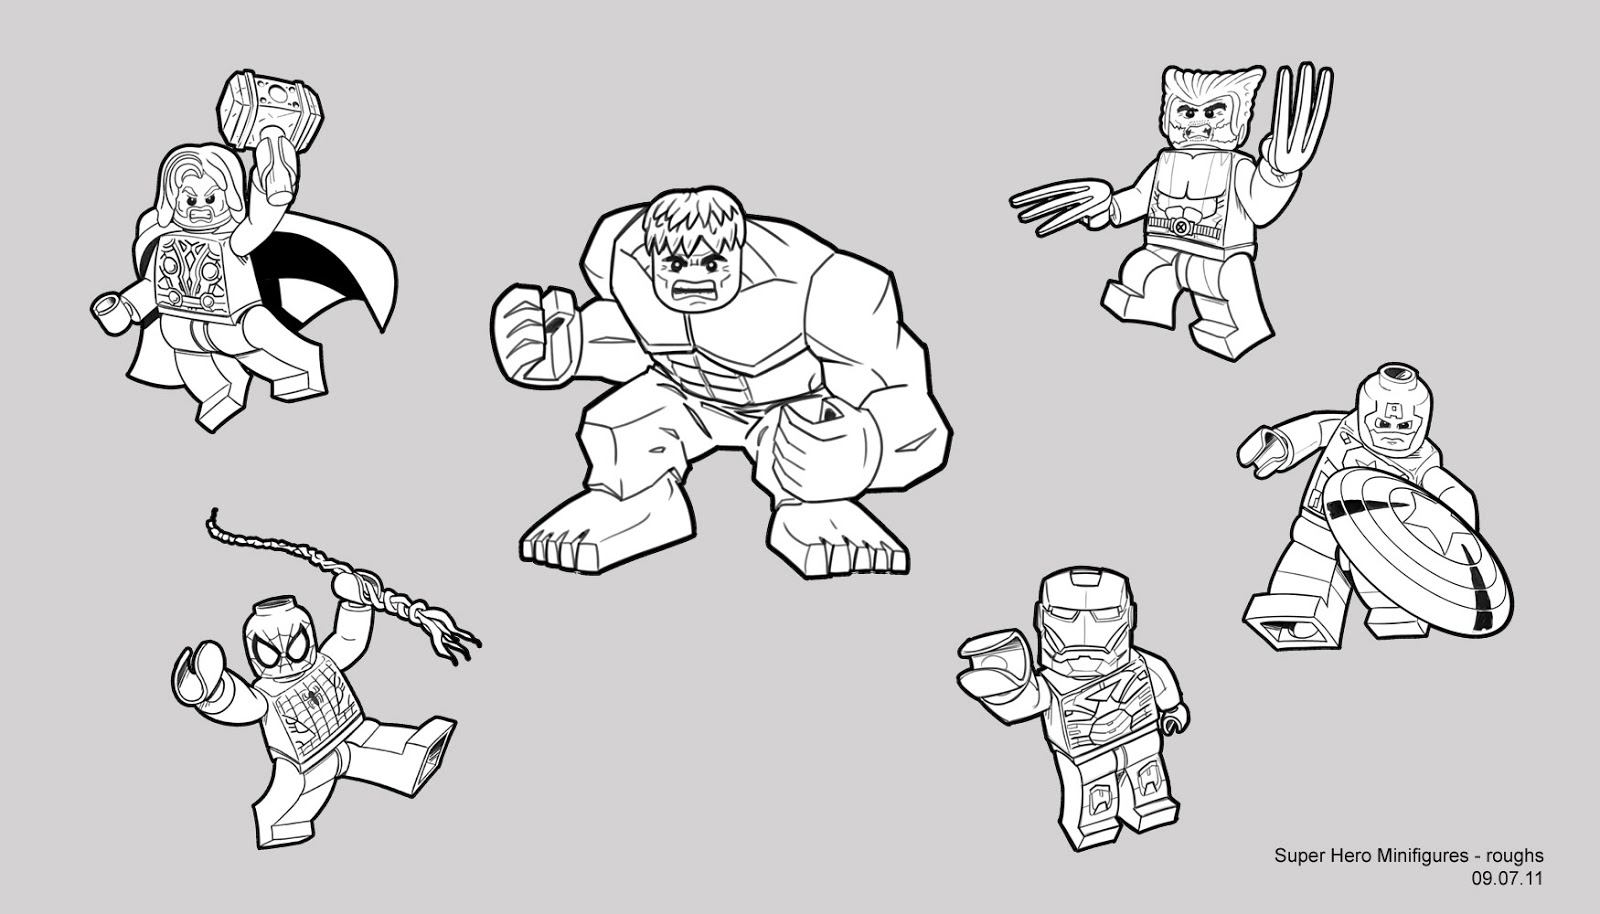 lego super heroes colouring pages lego superheroes coloring pages coloring pages to pages lego super colouring heroes